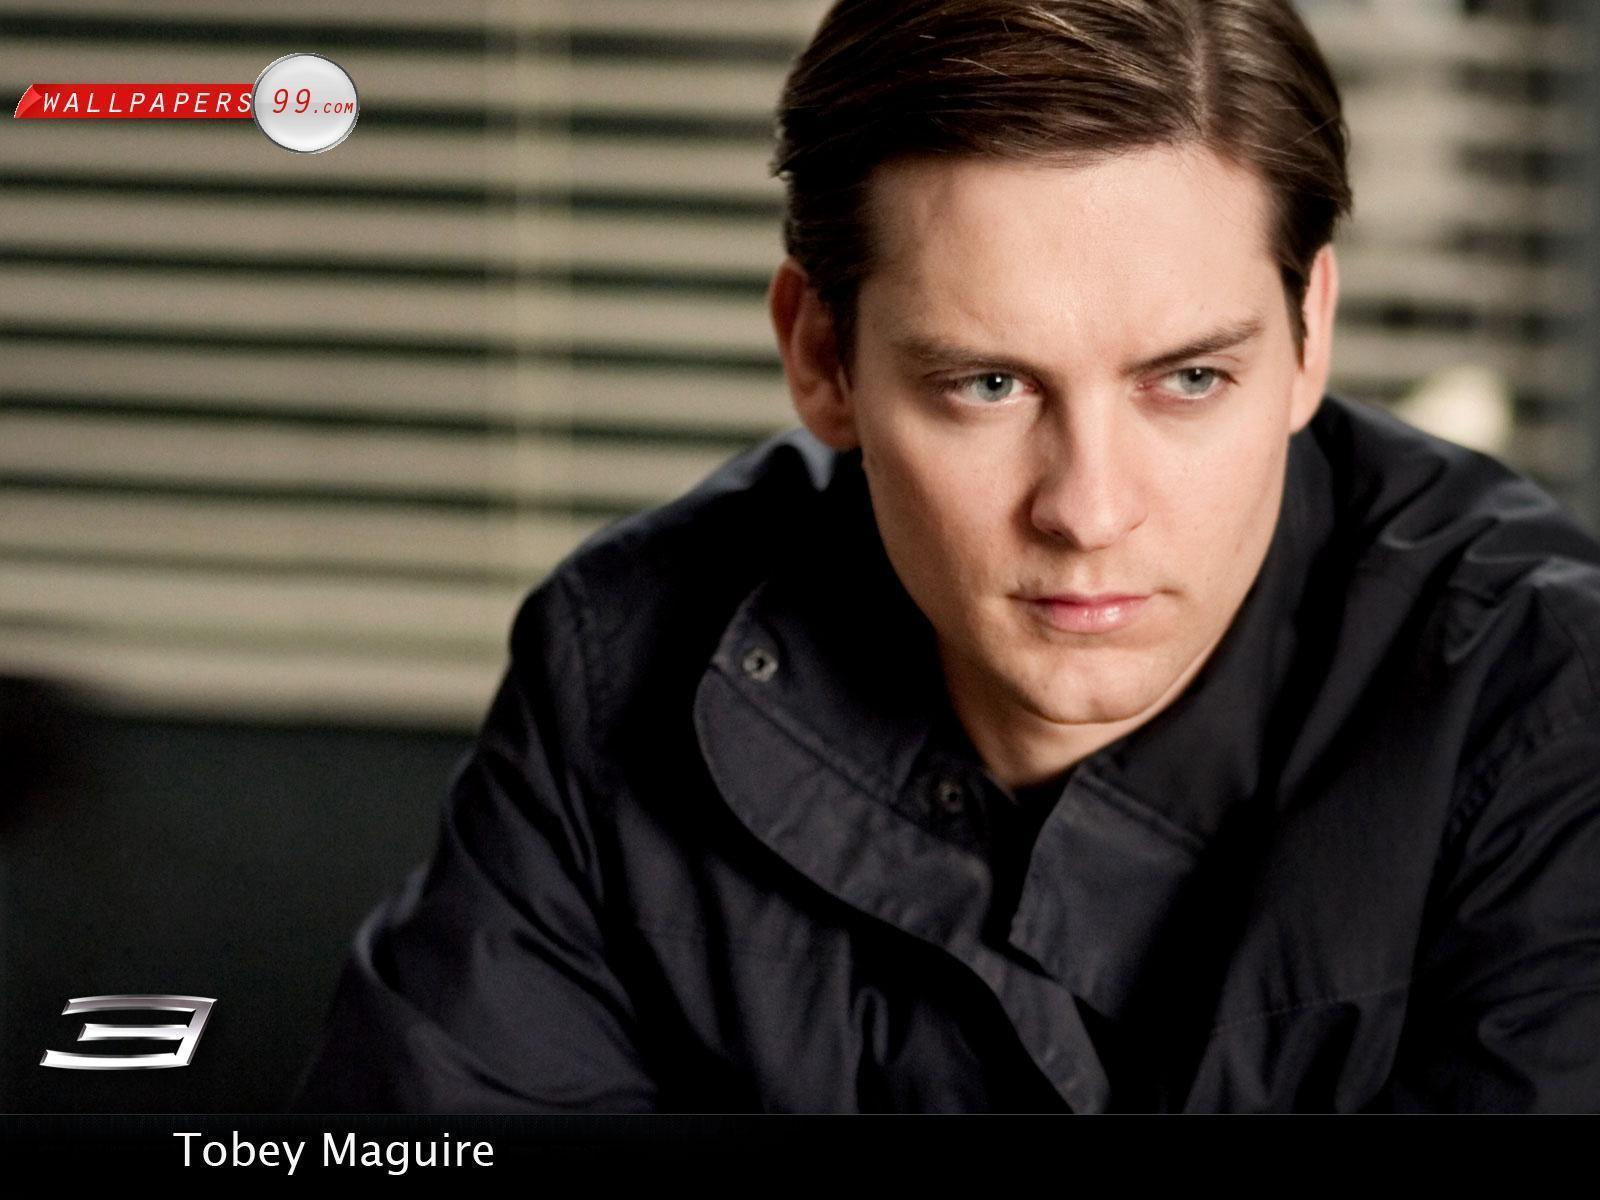 Free Tobey Maguire Wallpapers Photos Pictures Image Free